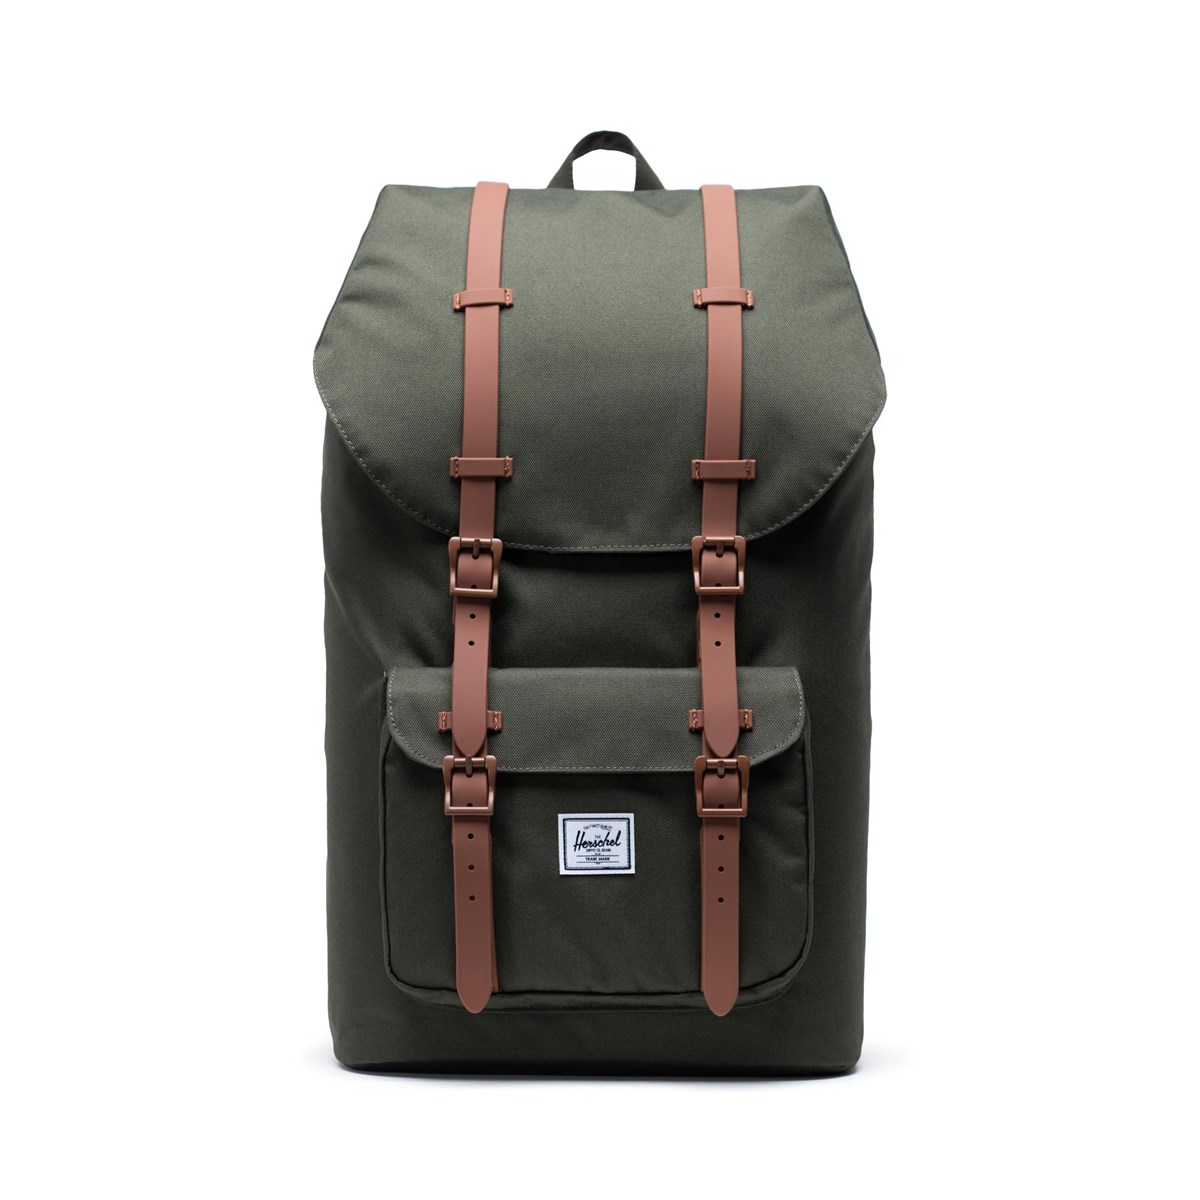 Little America Backpack in Dark Green